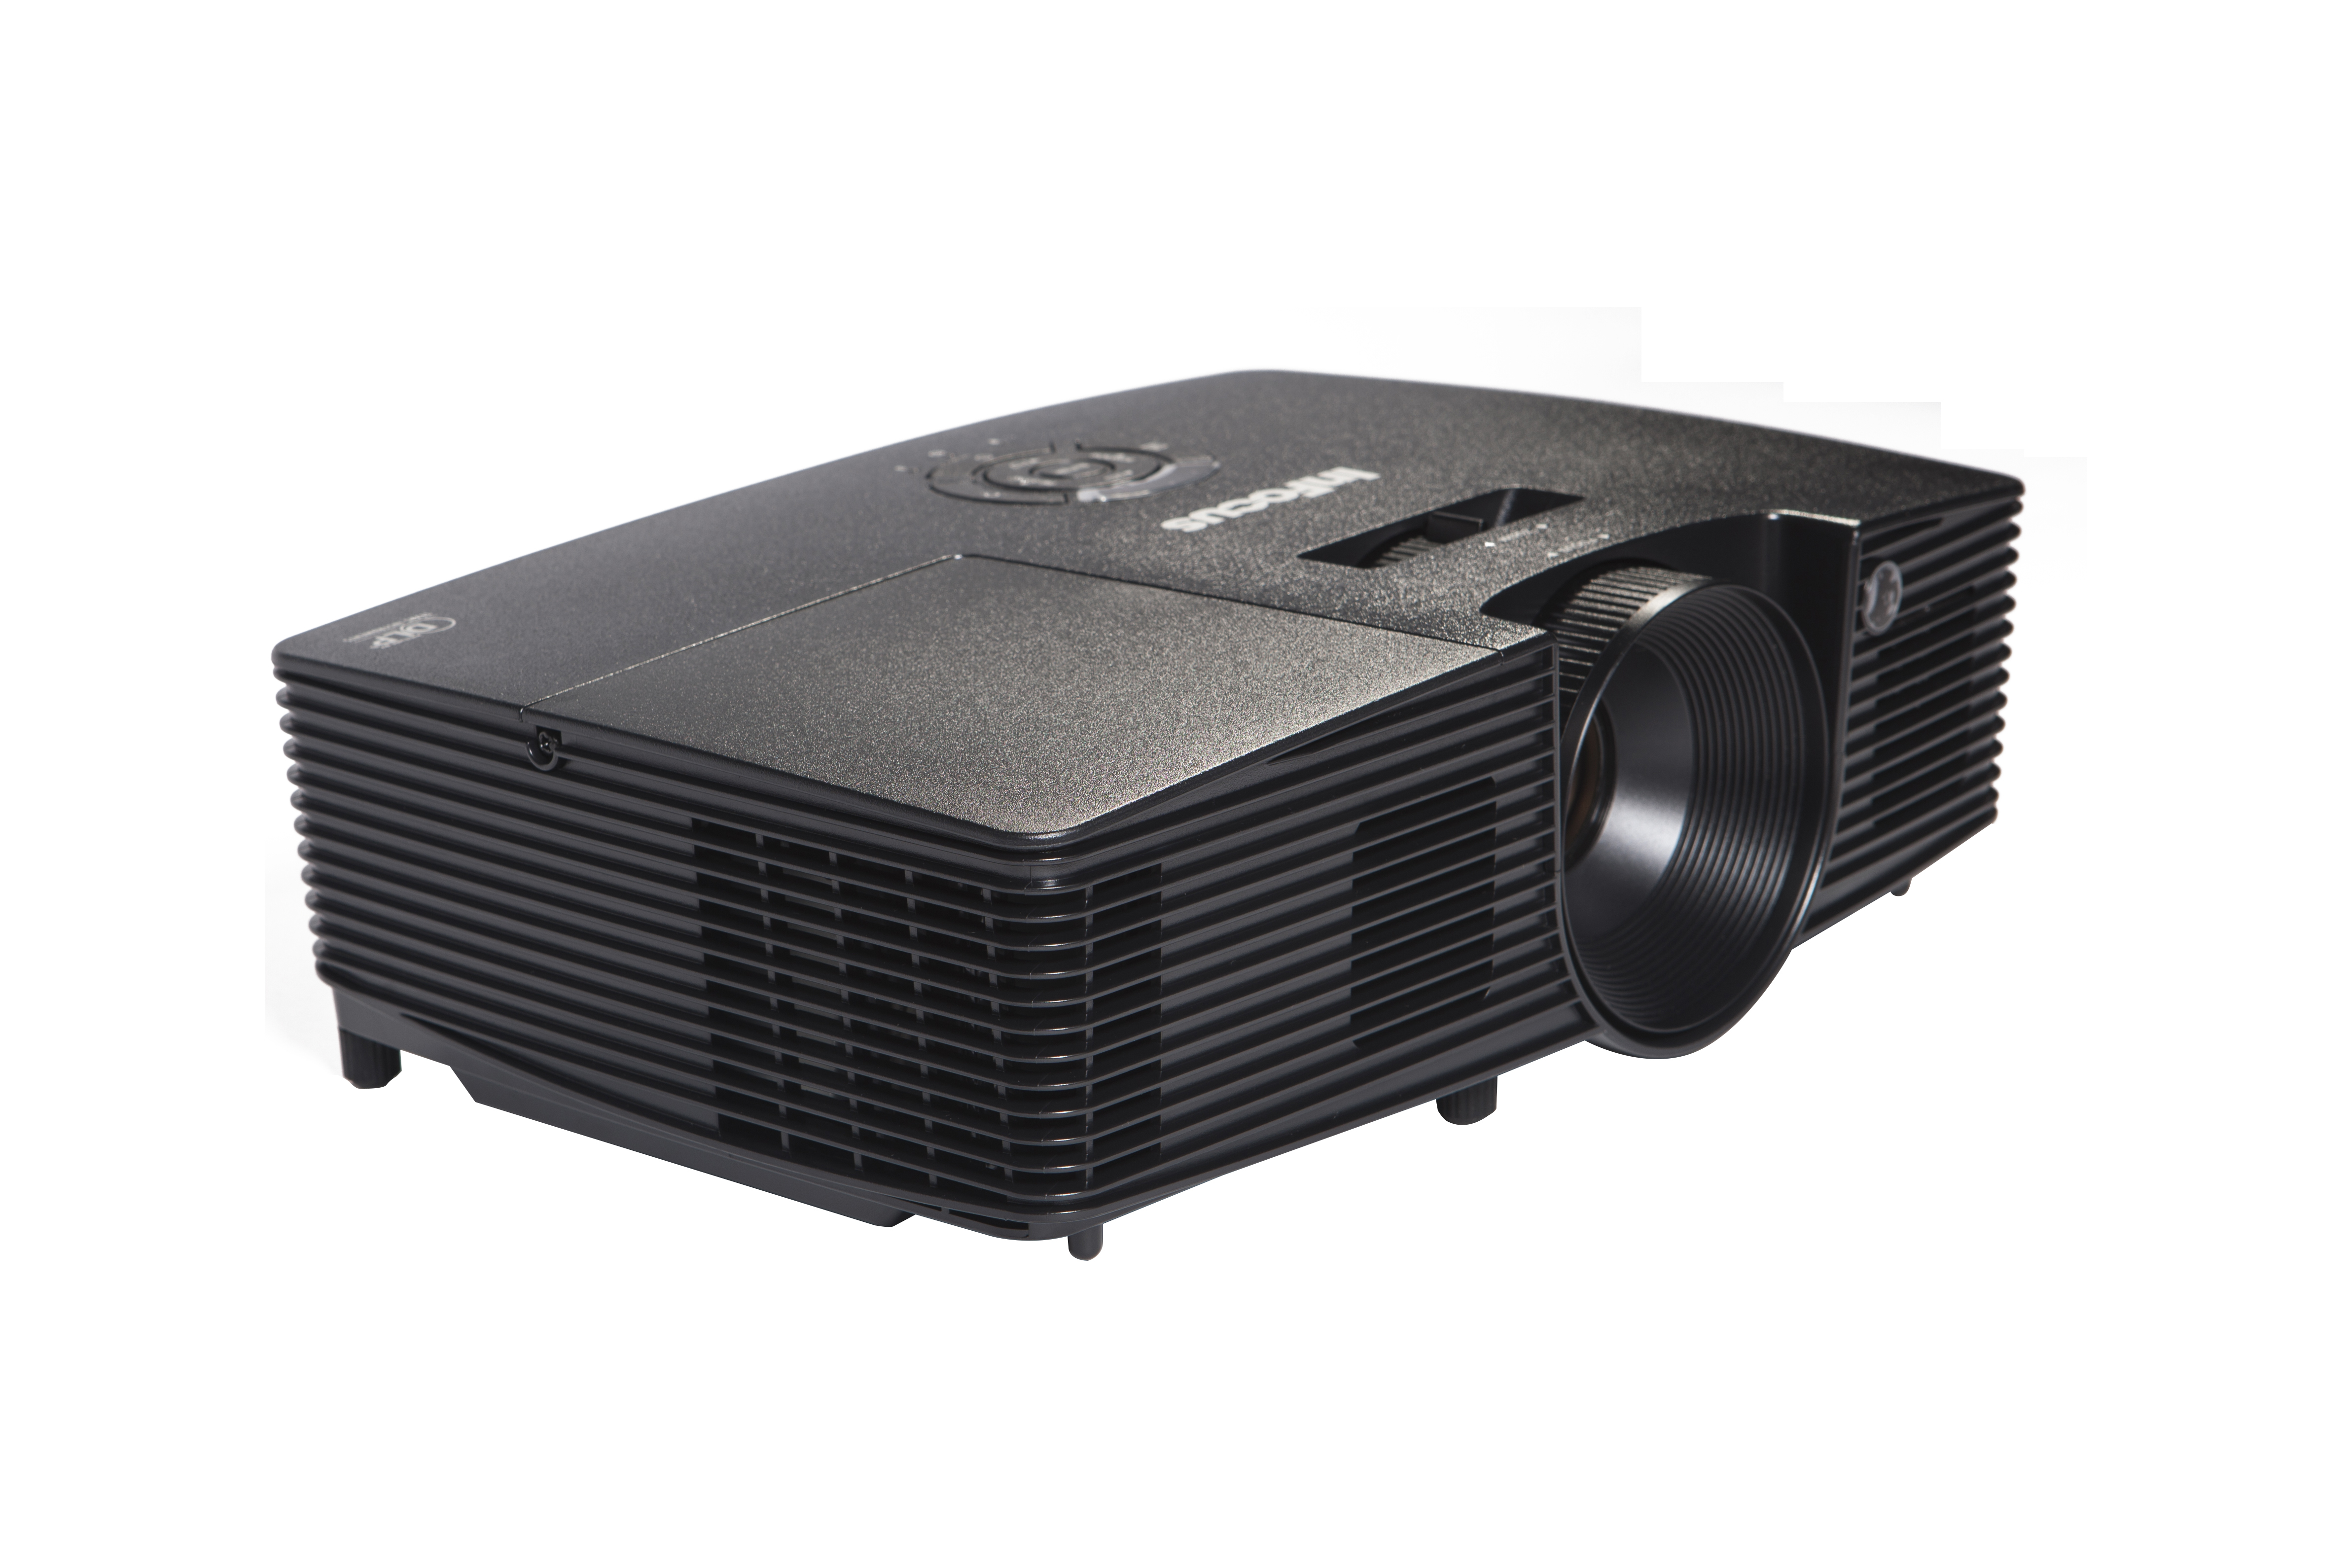 Infocus IN116xv 3400lm SVGA DLP Projector